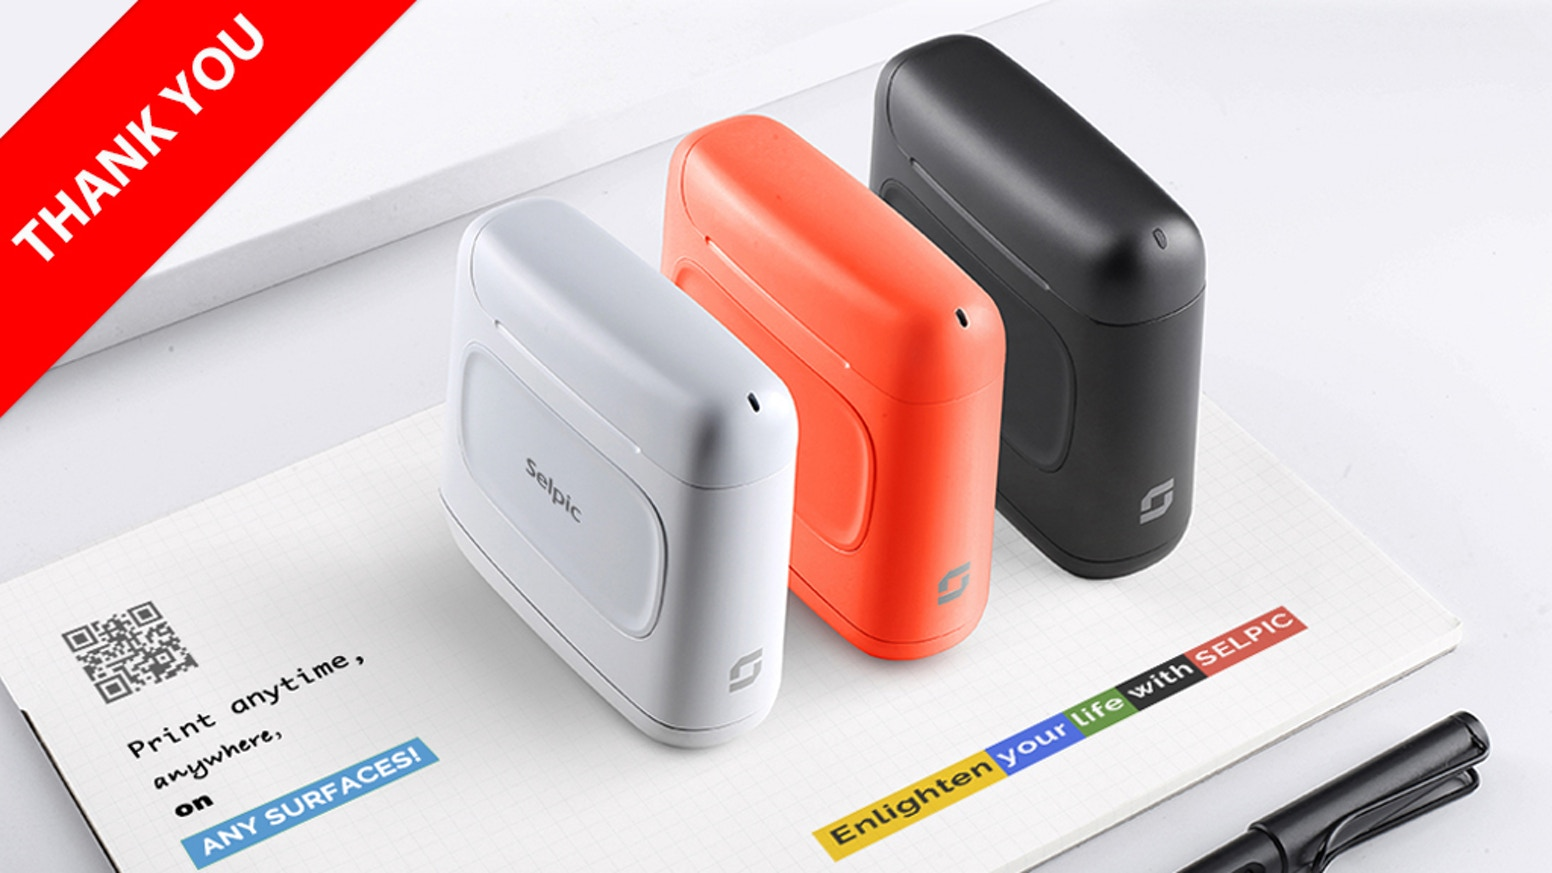 Selpic S1+ is a palm-sized smart handheld printer that can print texts and images anytime and anywhere!